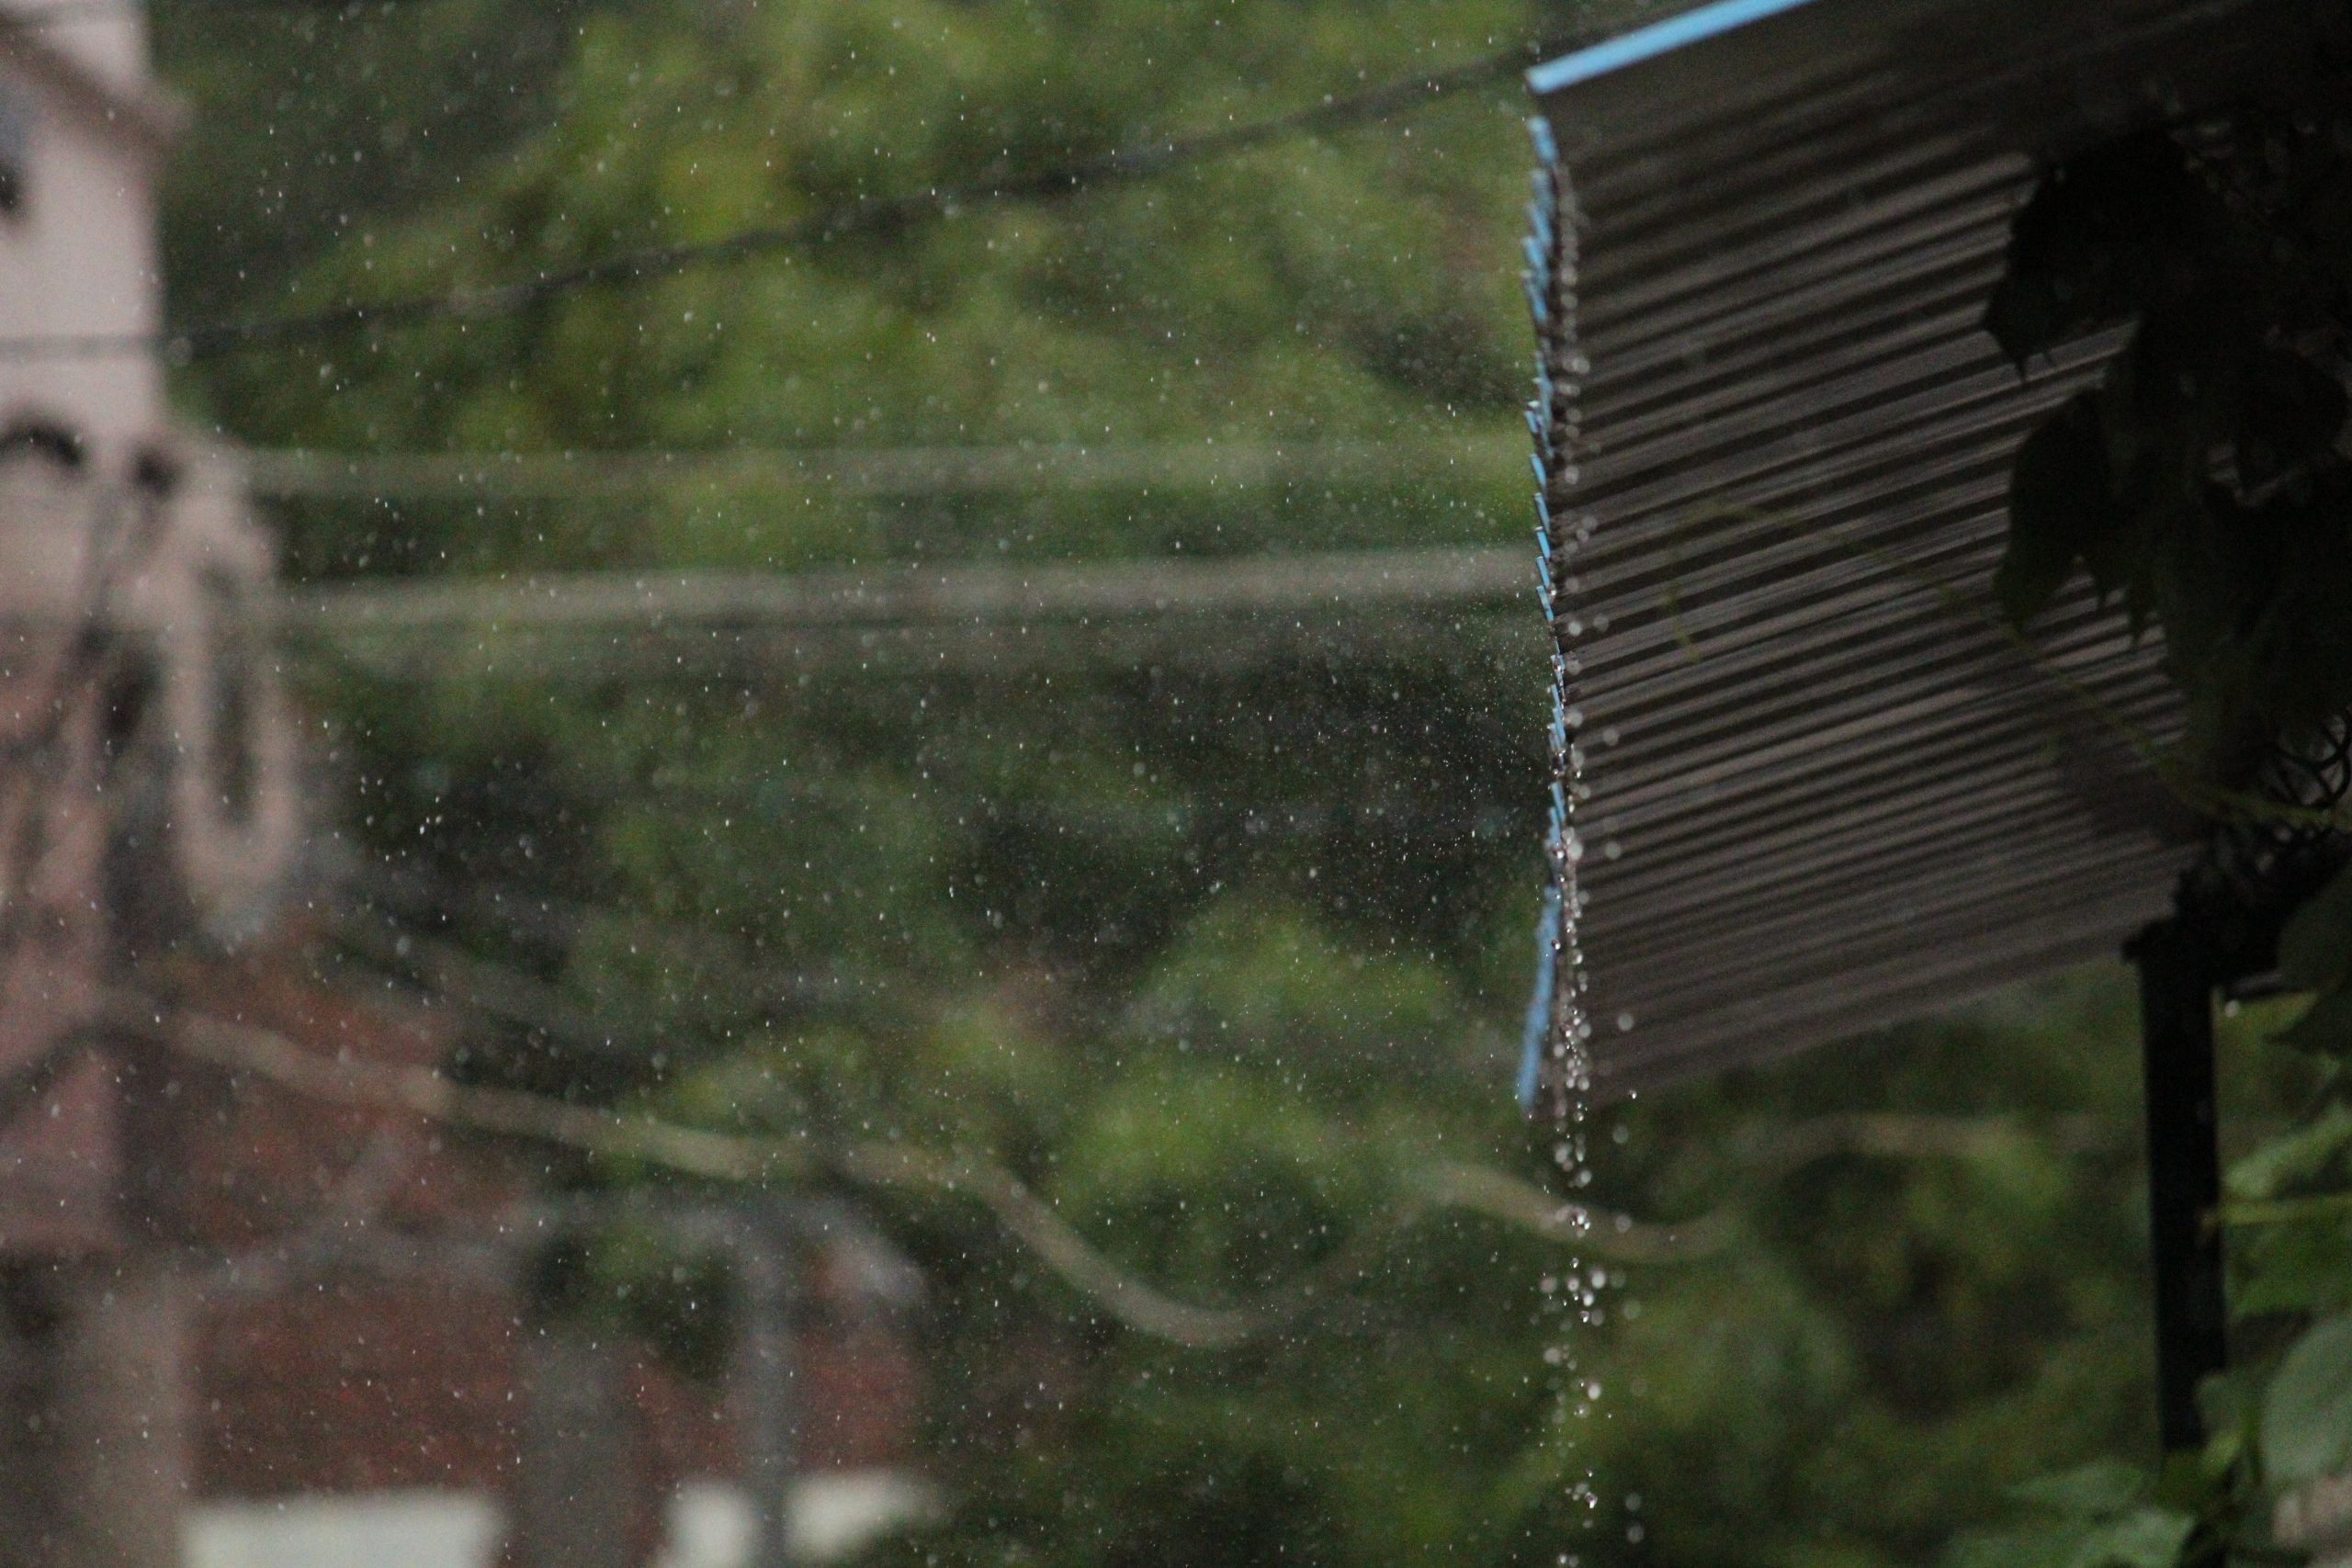 Rain water falling down from a shed